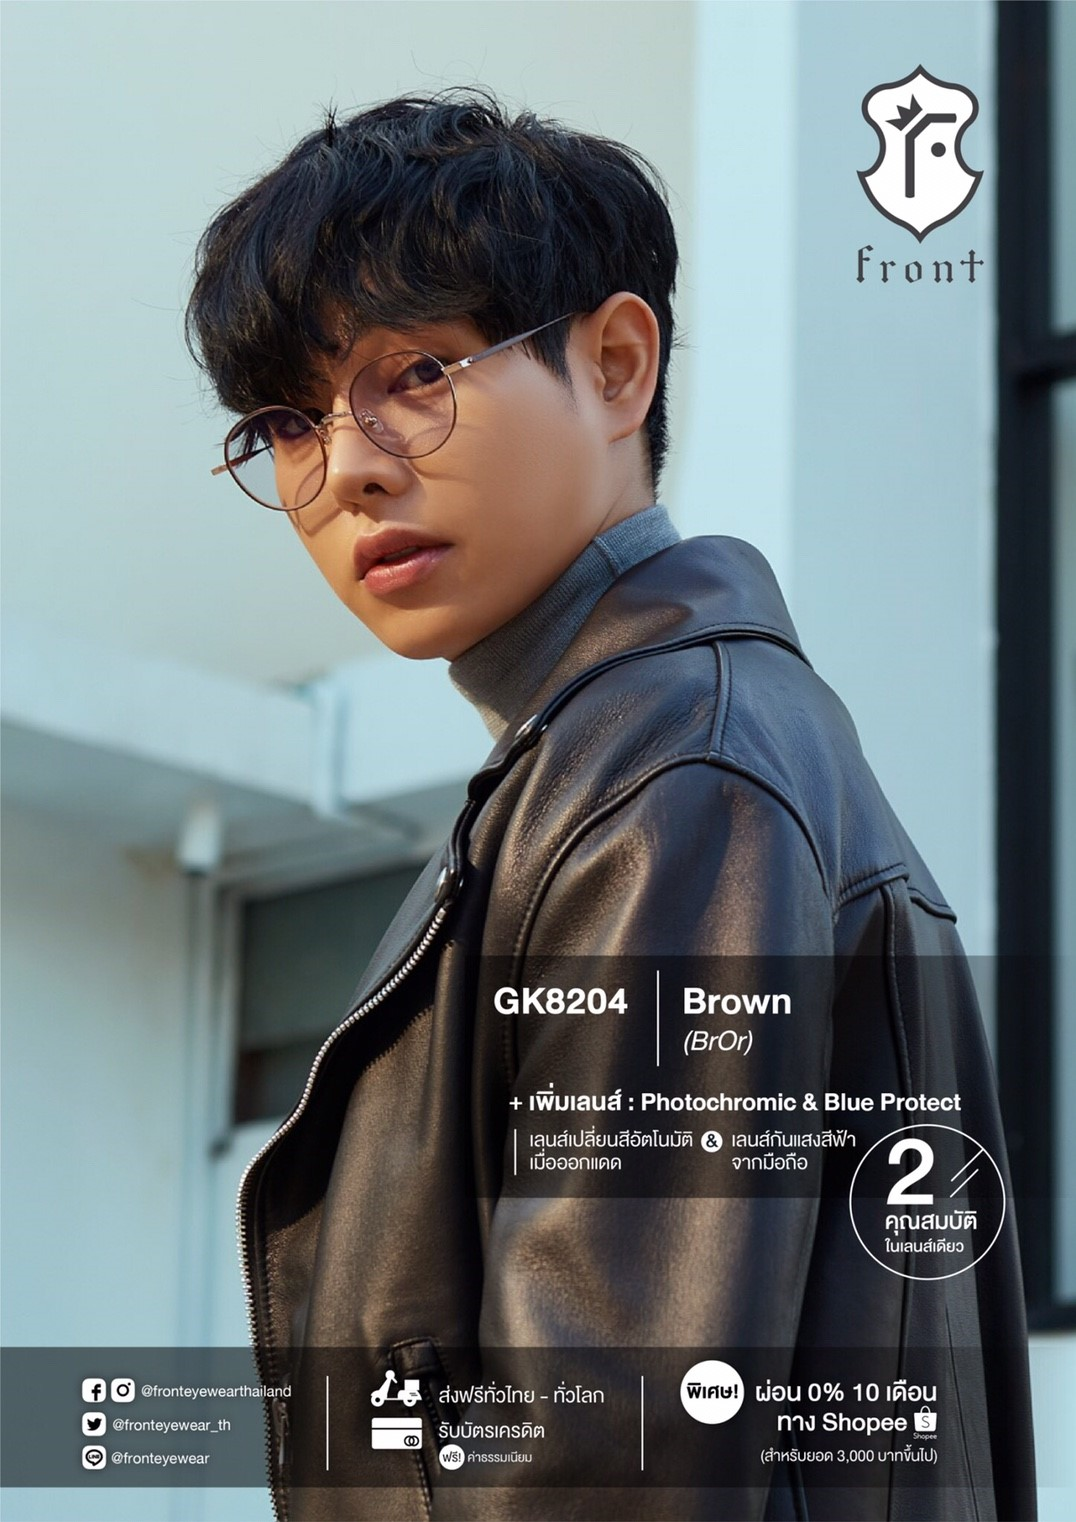 FrontxPeckPalit (A4)_190308_0005